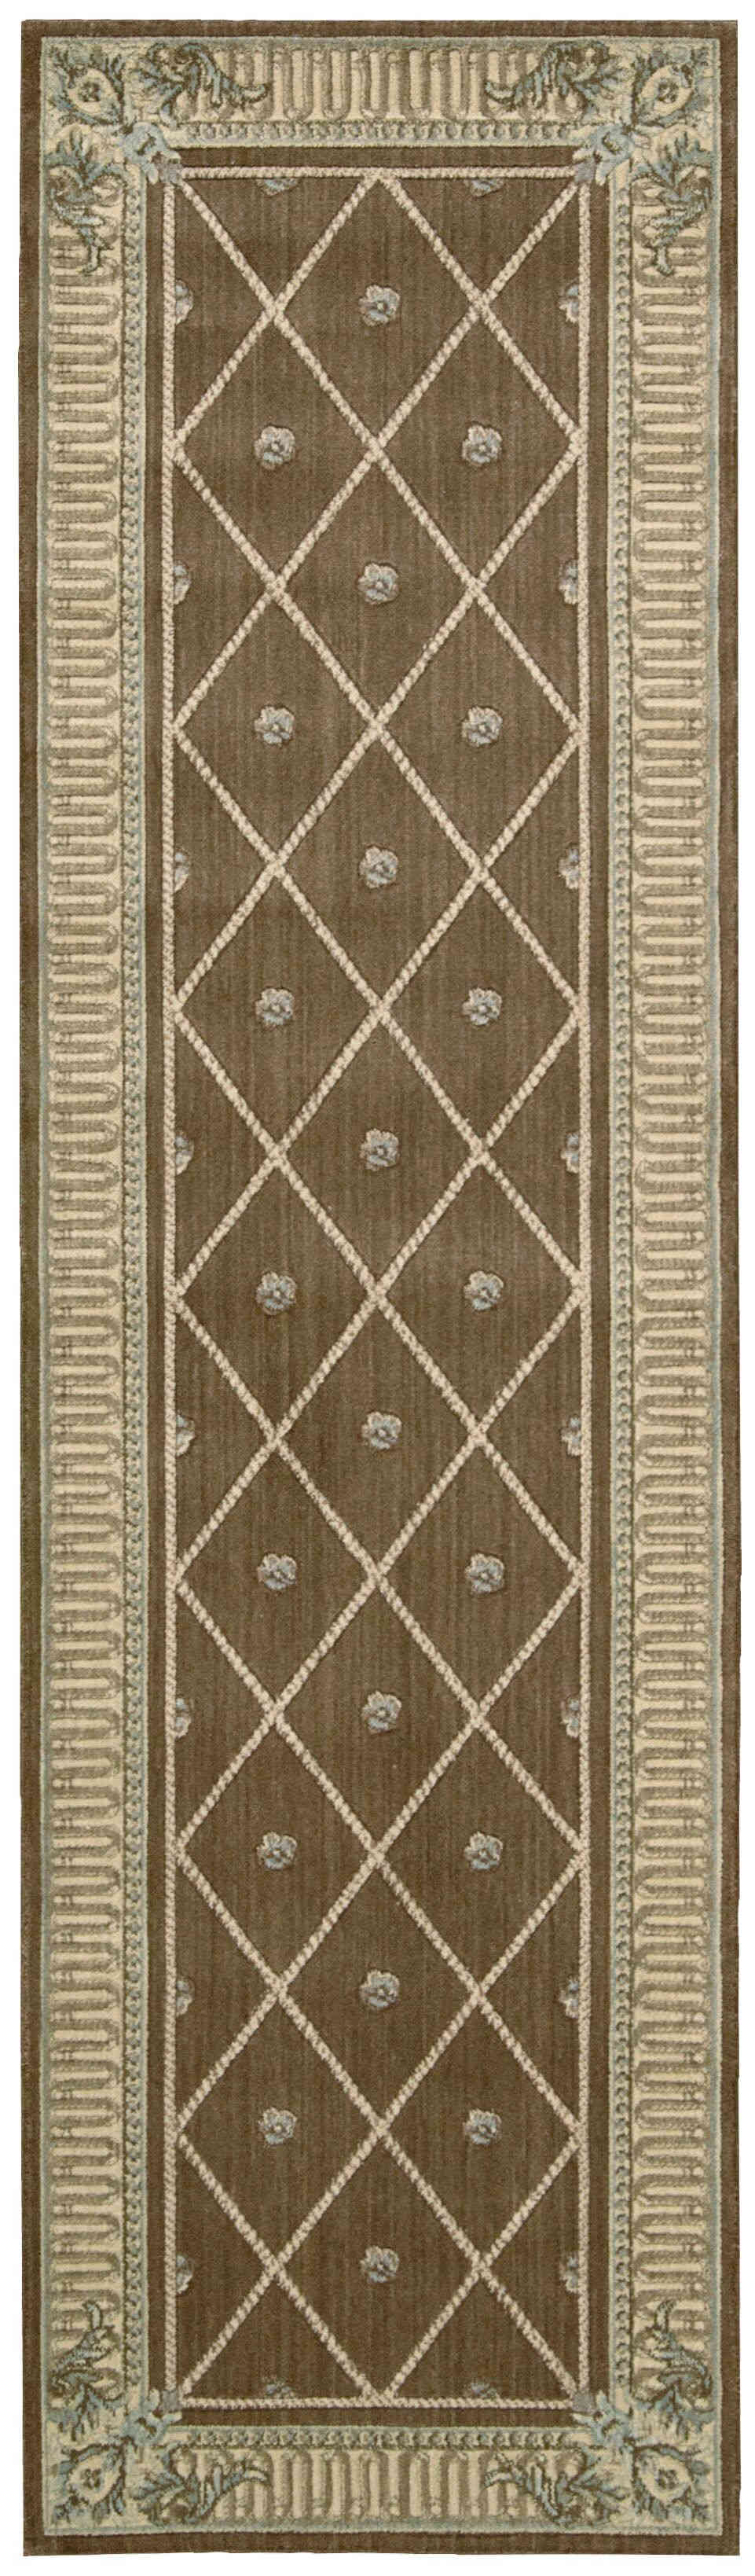 Nourison Ashton House Mink Area Rug